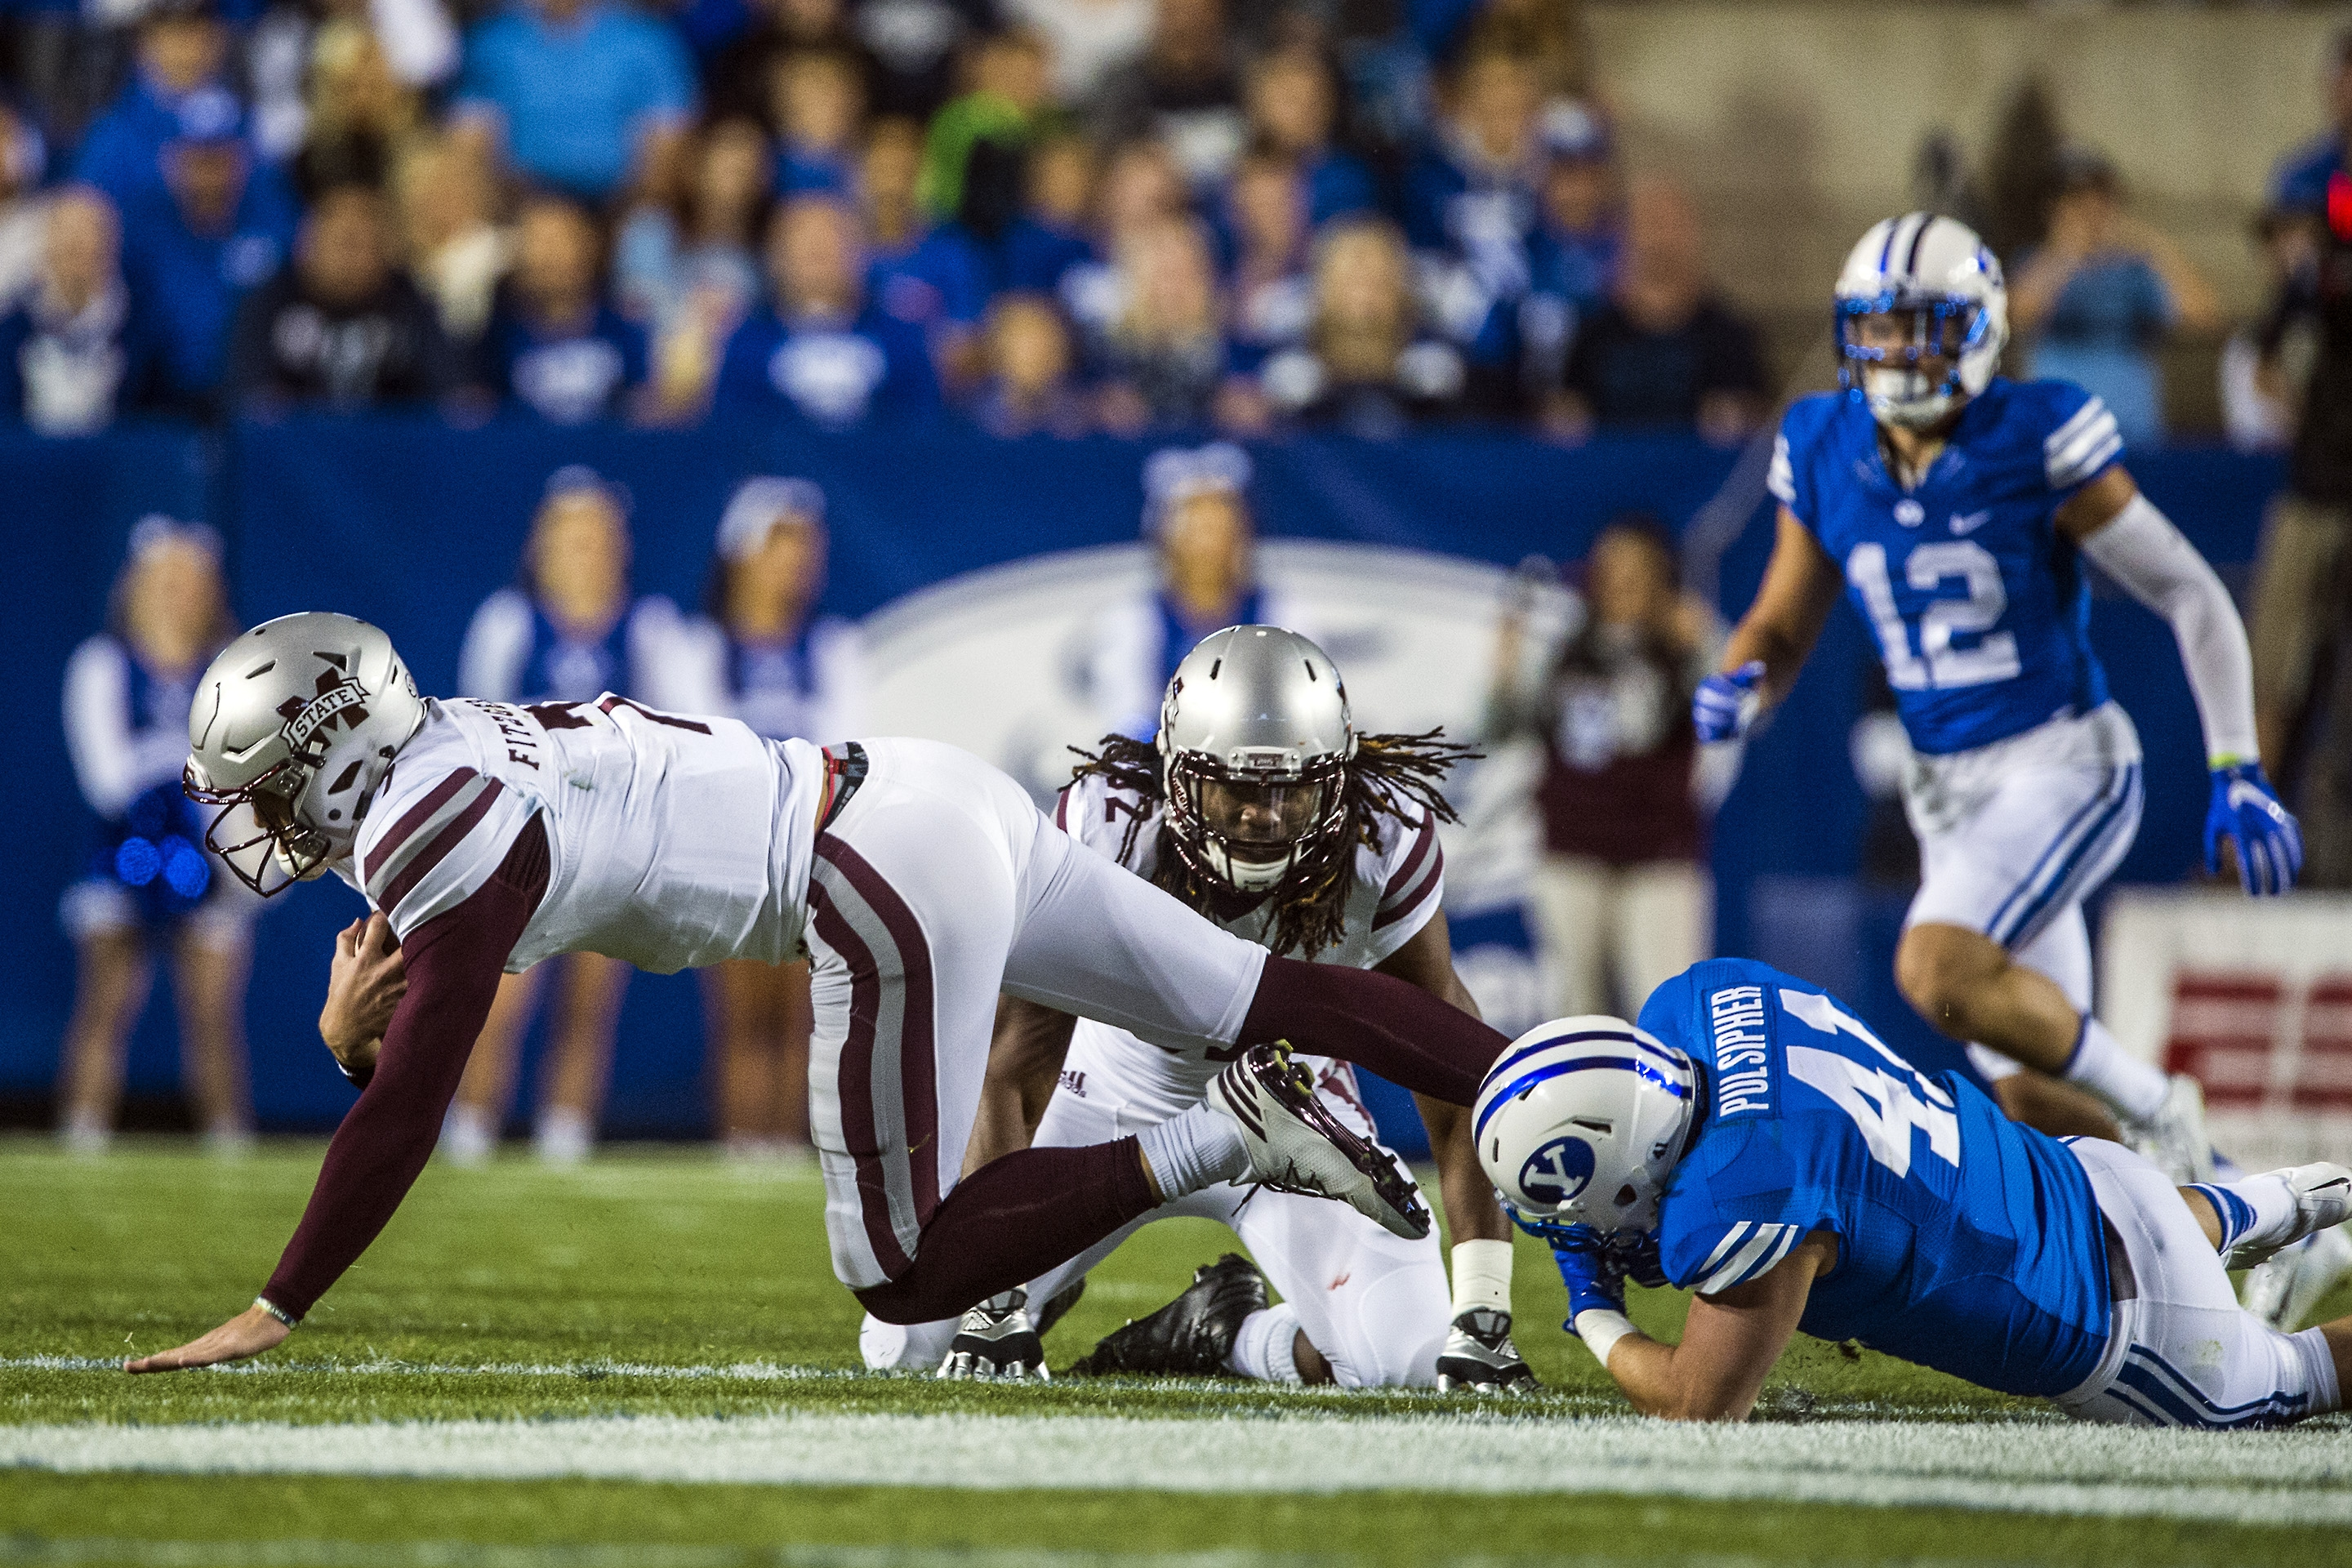 BYU linebacker Adam Pulsipher (41) sacks Mississippi State quarterback Nick Fitzgerald (7) during an NCAA college football game in Provo, Utah, Friday, Oct. 14, 2016. (Chris Detrick/The Salt Lake Tribune via AP)